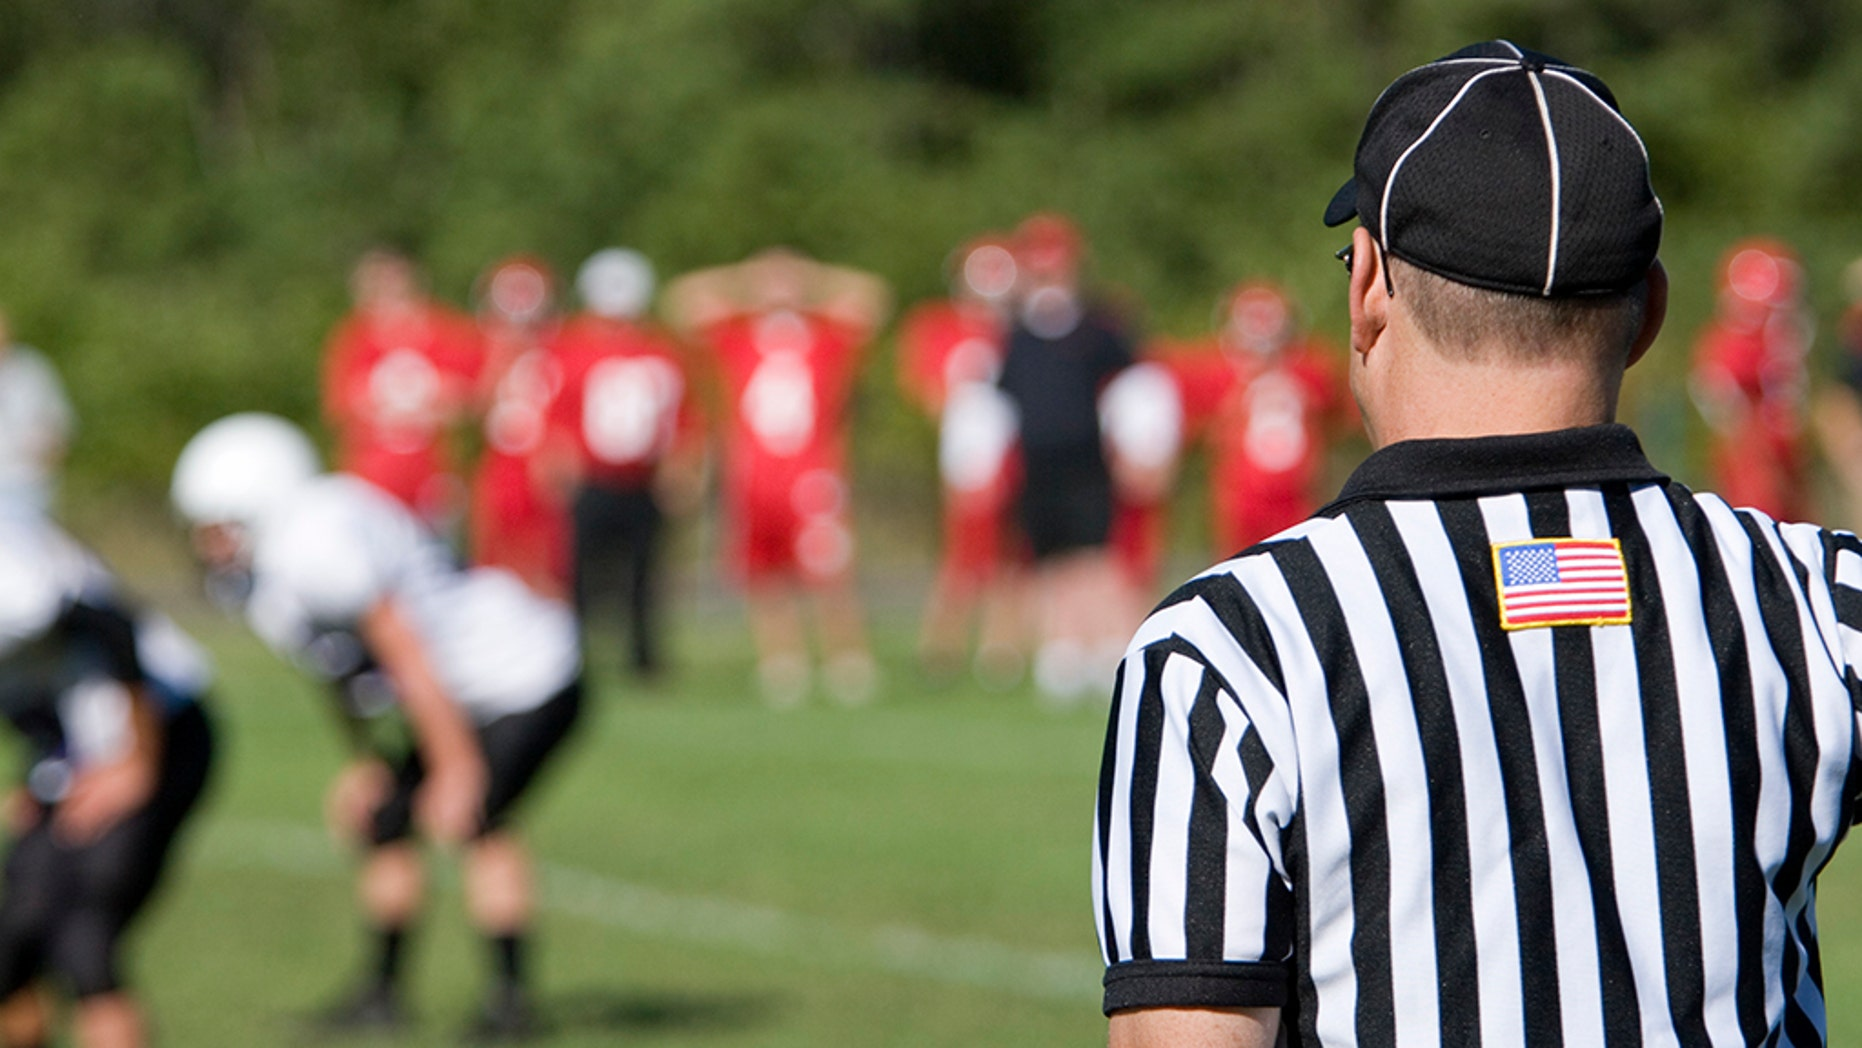 Parents and coaches lacking sportsmanship and civility may be to blame for a growing shortage of high school referees in California, according to reports. (iStock)